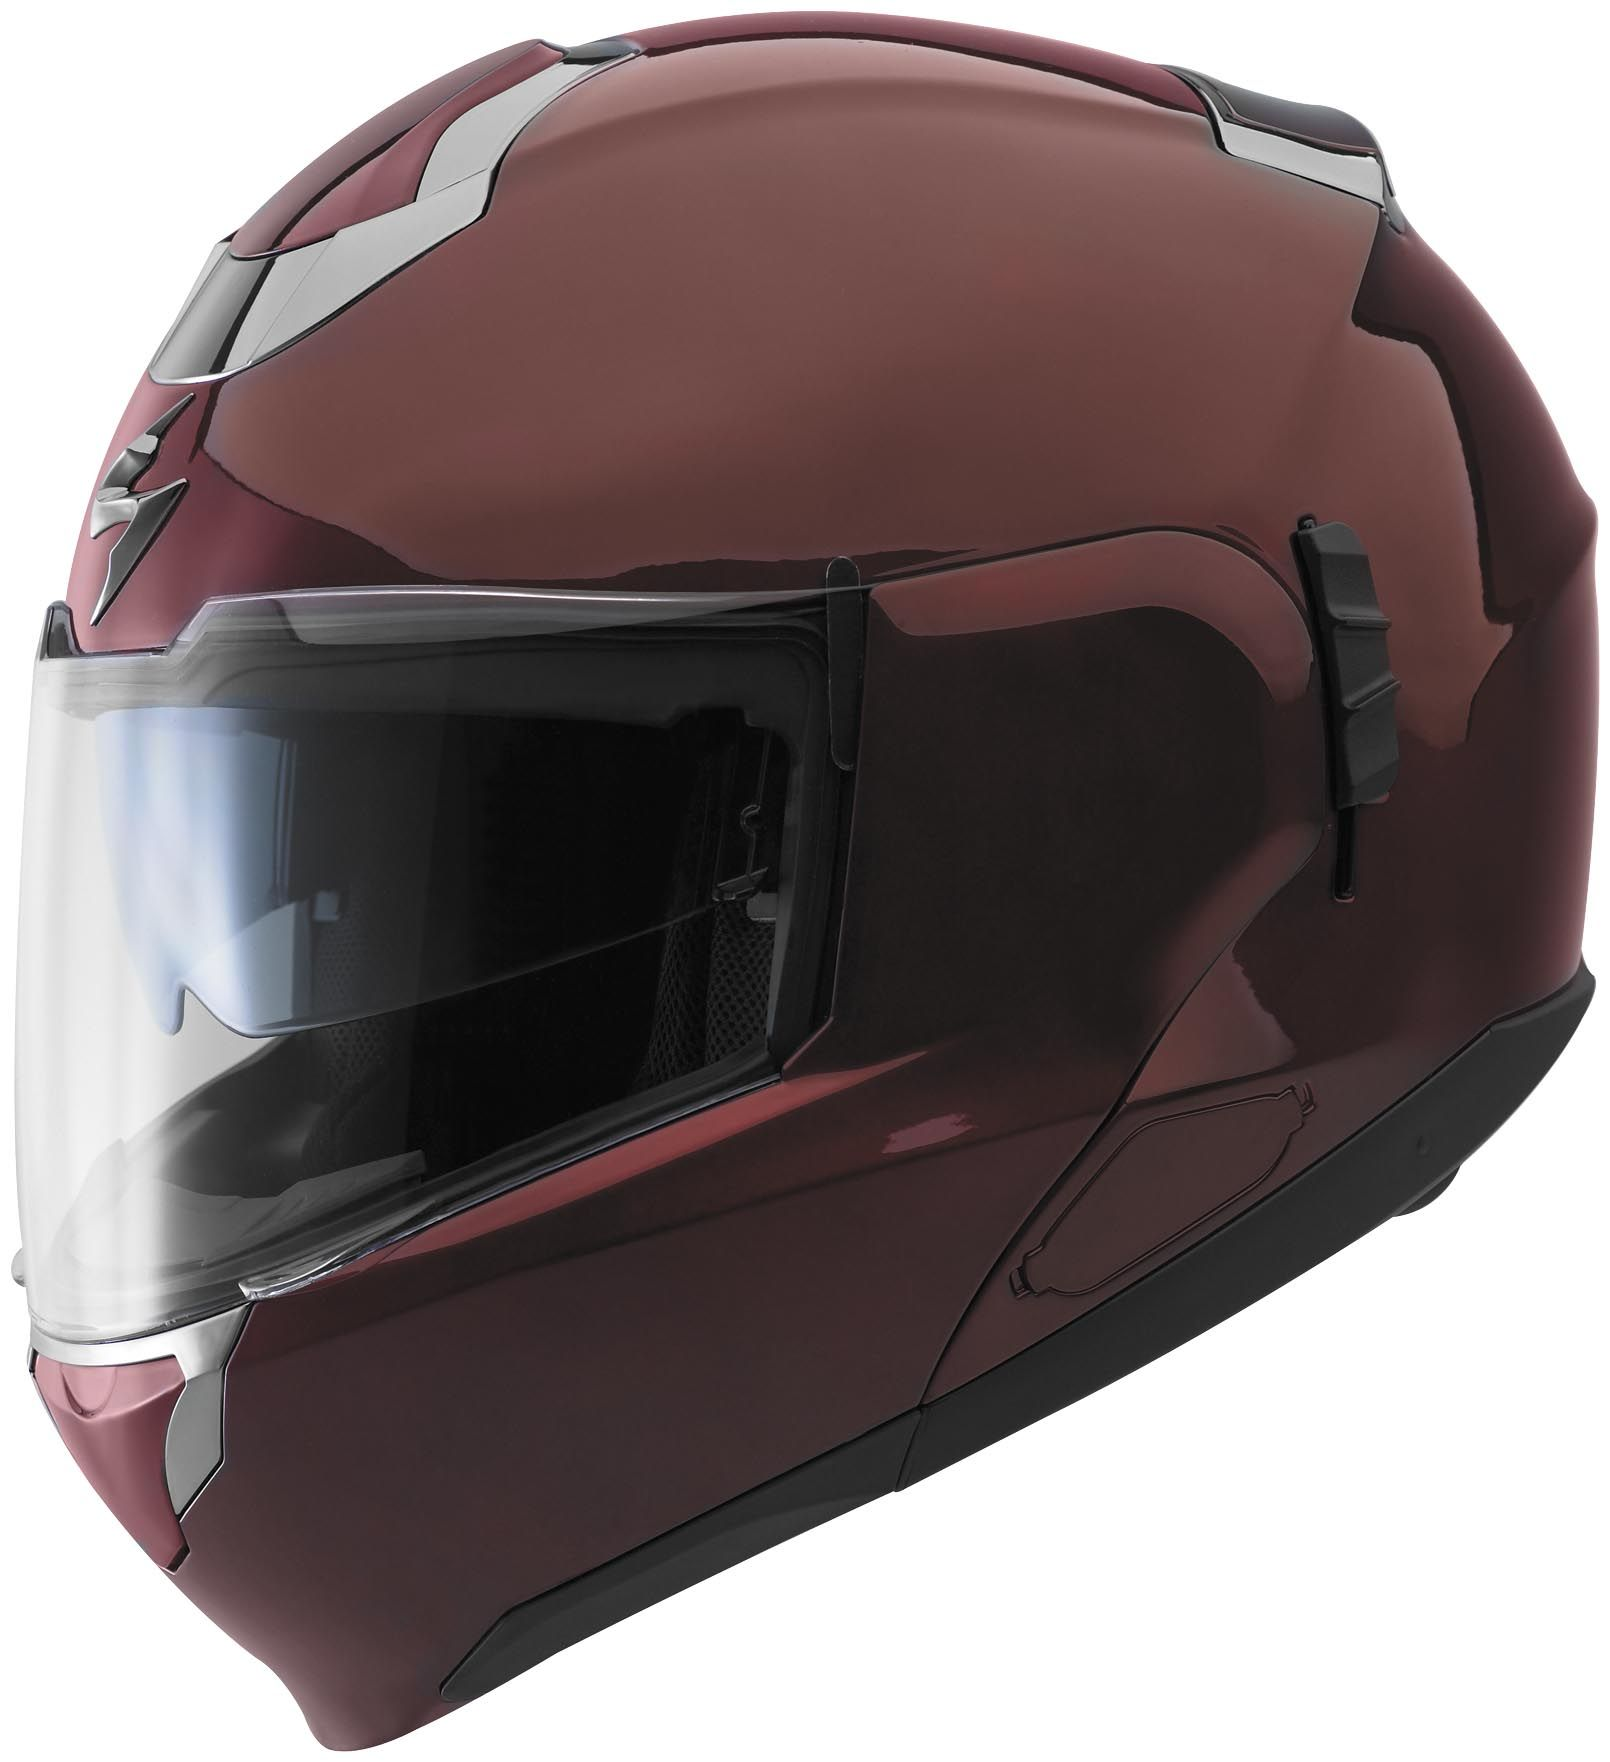 a164a705 Scorpion Exo 900 Modular Transformer Motorcycle Helmet Solid Colors Black  Cherry | eBay